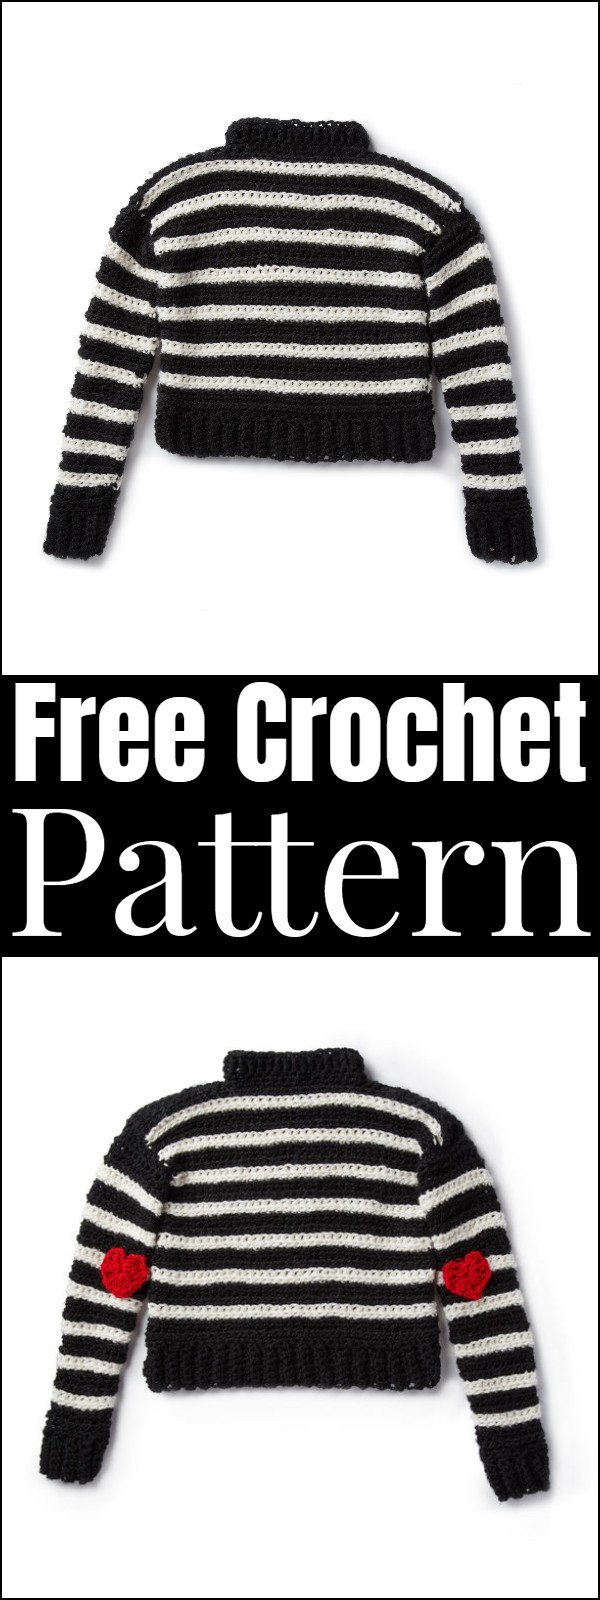 83 Free Crochet Sweater Patterns Diy Crafts By Diyncrafty Medium